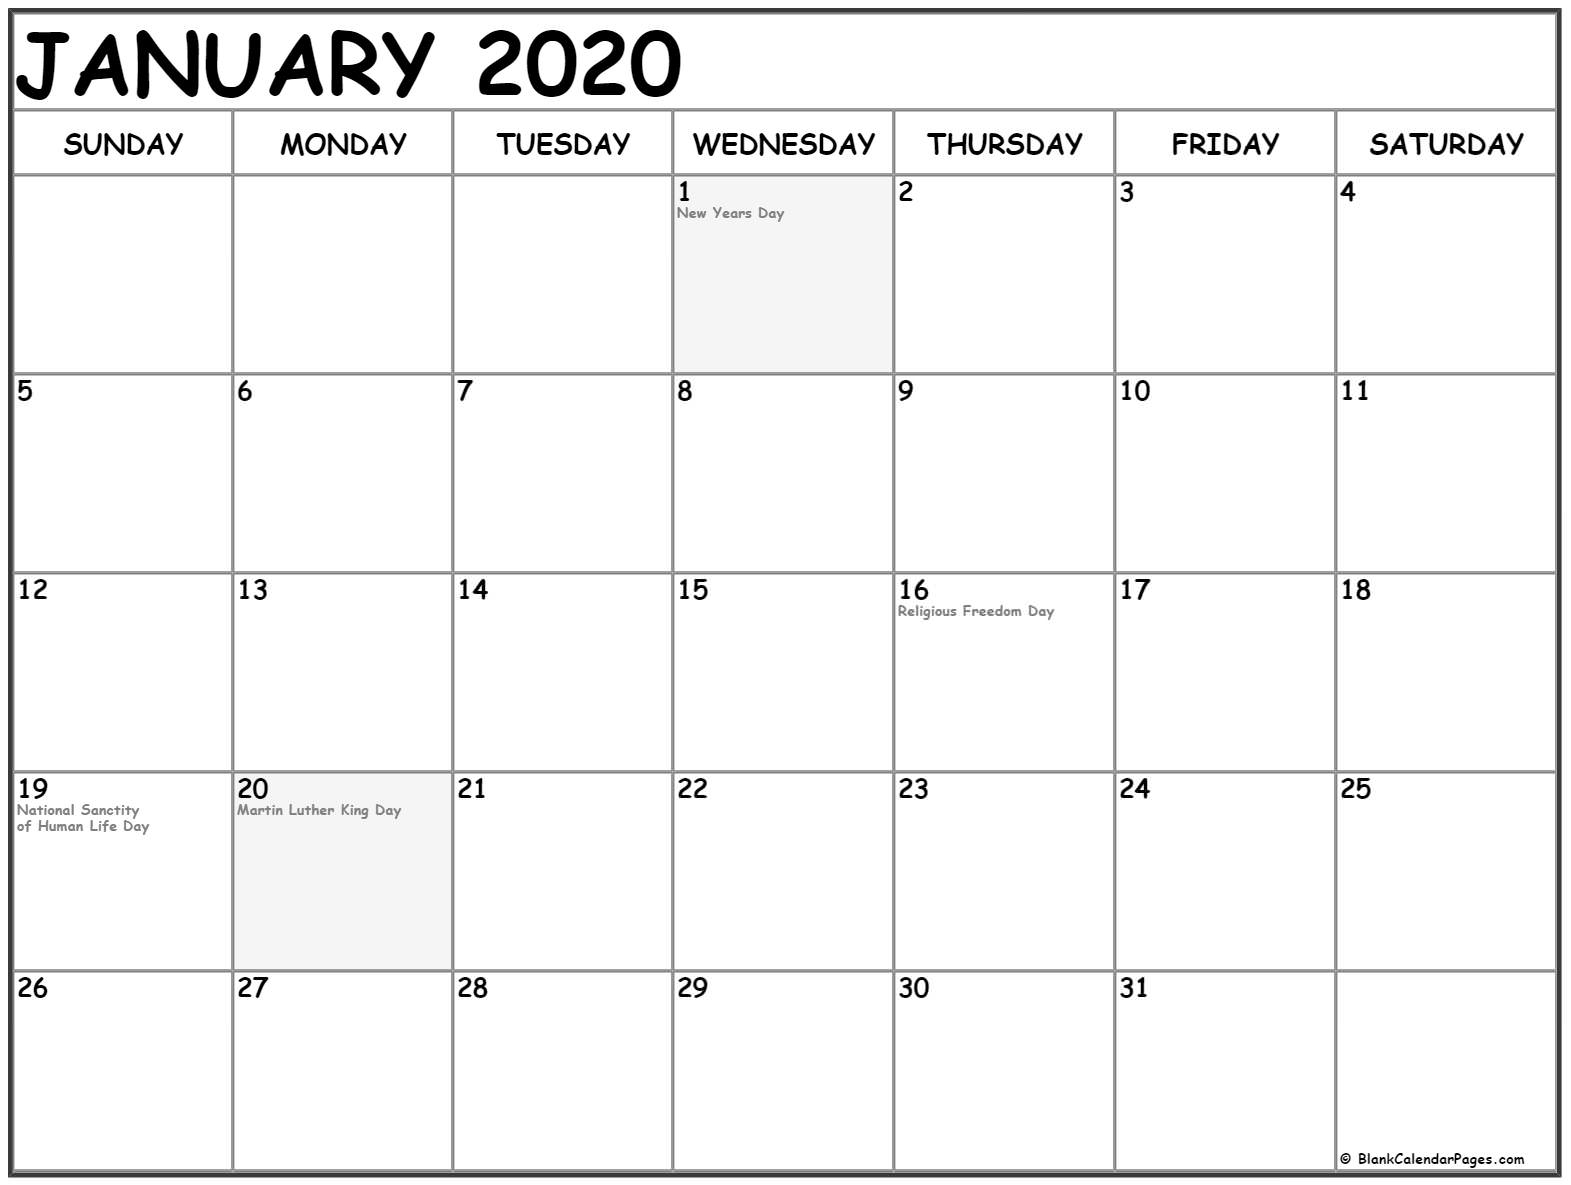 January 2020 Calendar Printable Templates Holidays - July-January 2020 Us Calendar